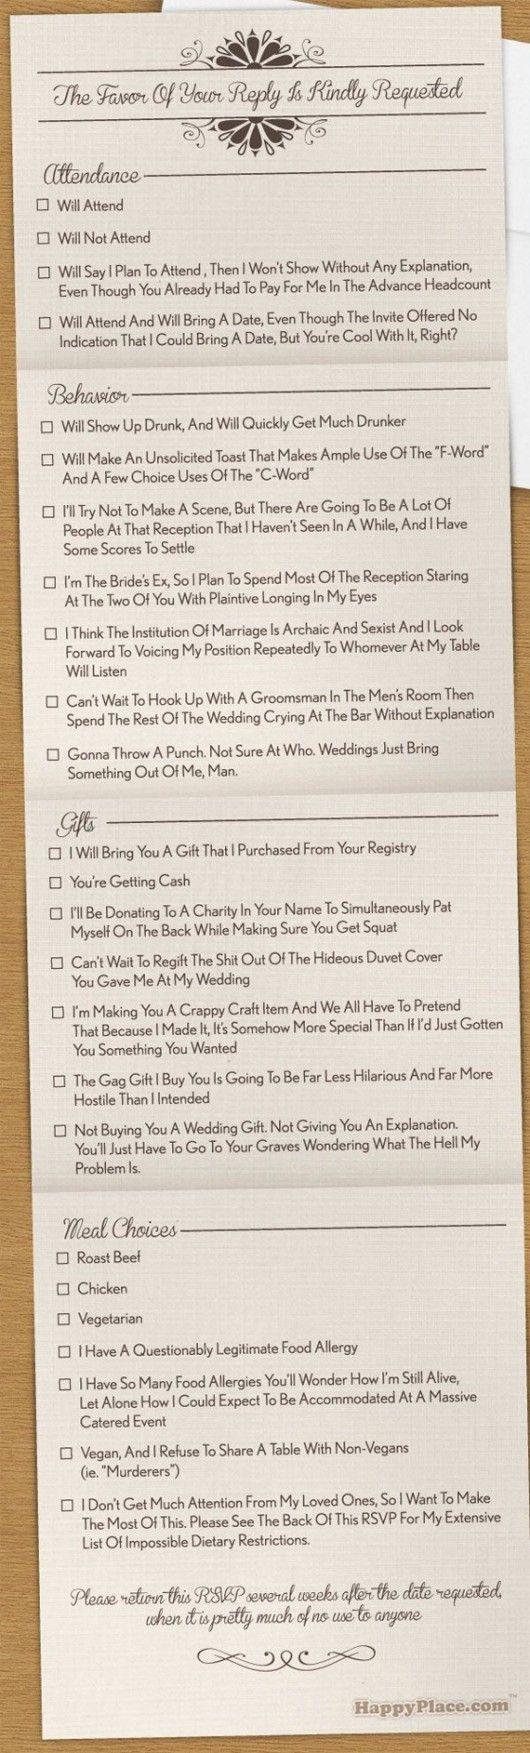 20 Ideas for Funny Wedding Invitations to Take the Stuffiness Out of the Occasion | NextDayFlyers